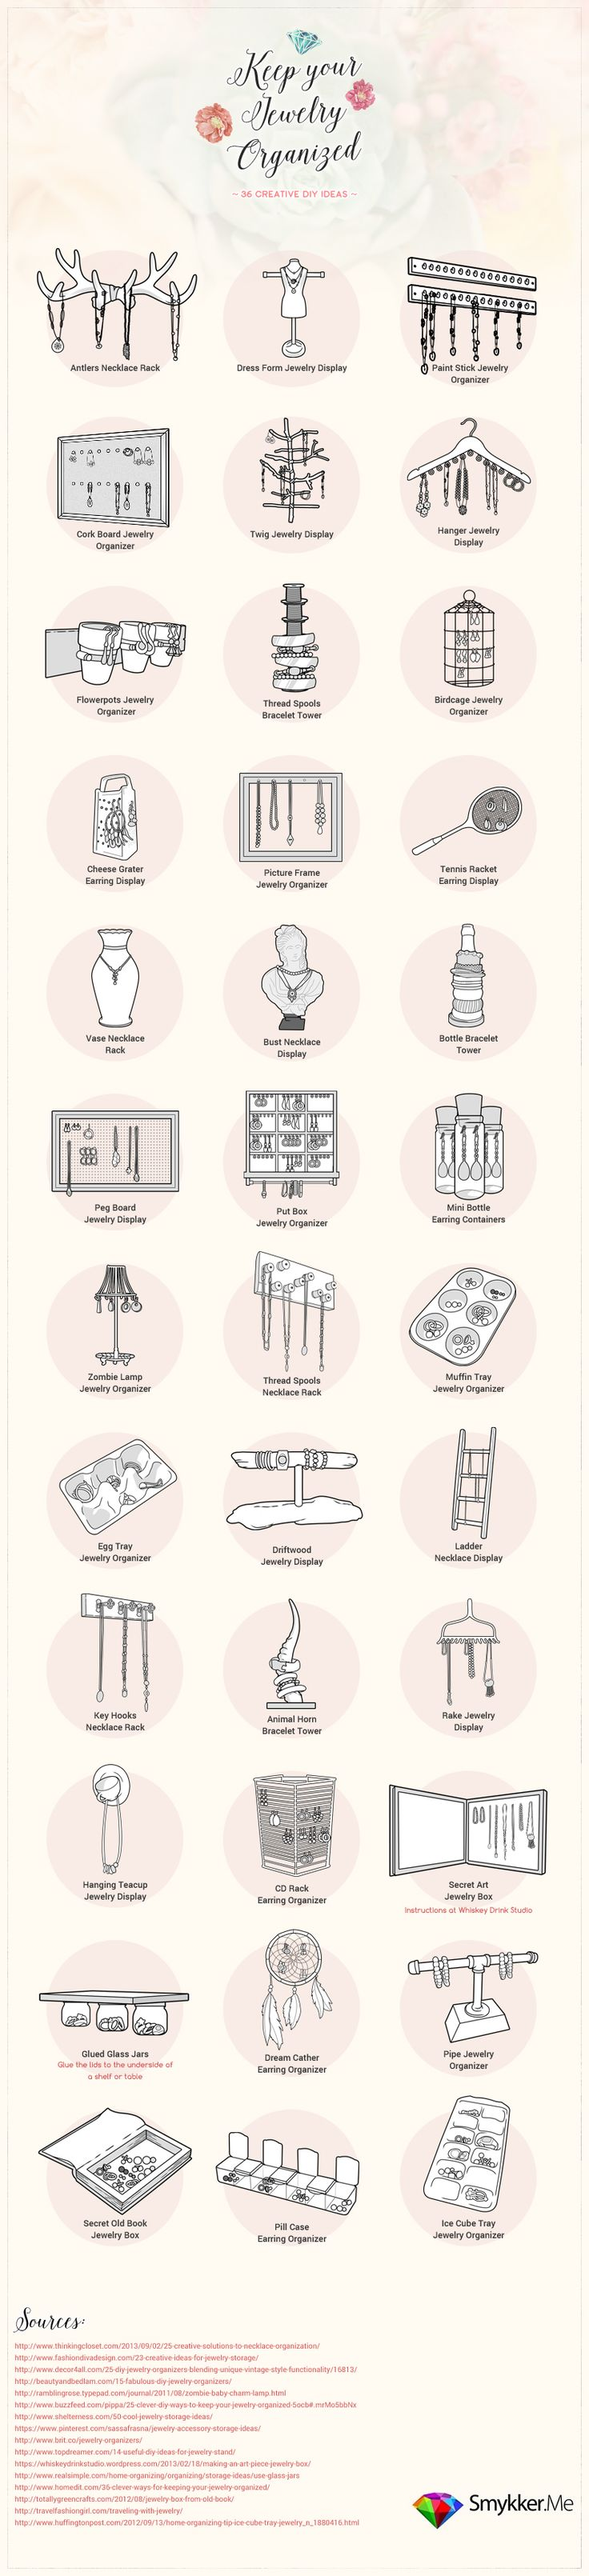 36+ Creative Ways to Organize Jewelry - most of these can be done with things I already have around the house! @Remodelaholic